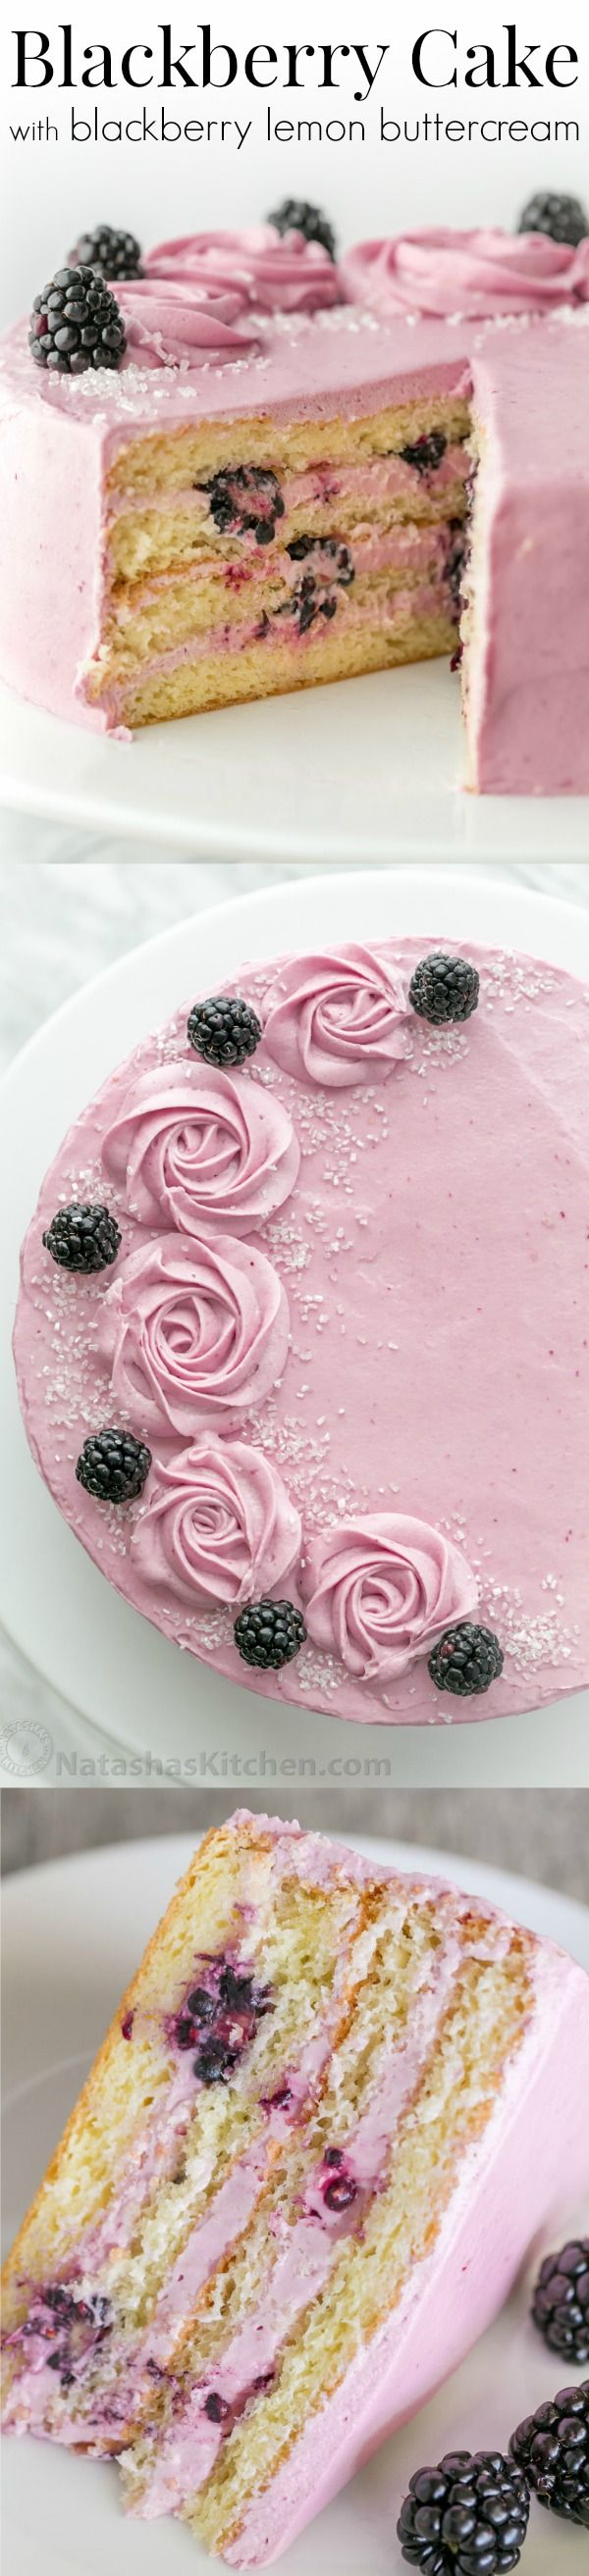 Thank you to our friends at Driscoll's (our favorite berry brand) who sponsored this recipe. This blackberry cake is soft and moist and has a fluffy lemon blackberry buttercream frosting. The lemon ju